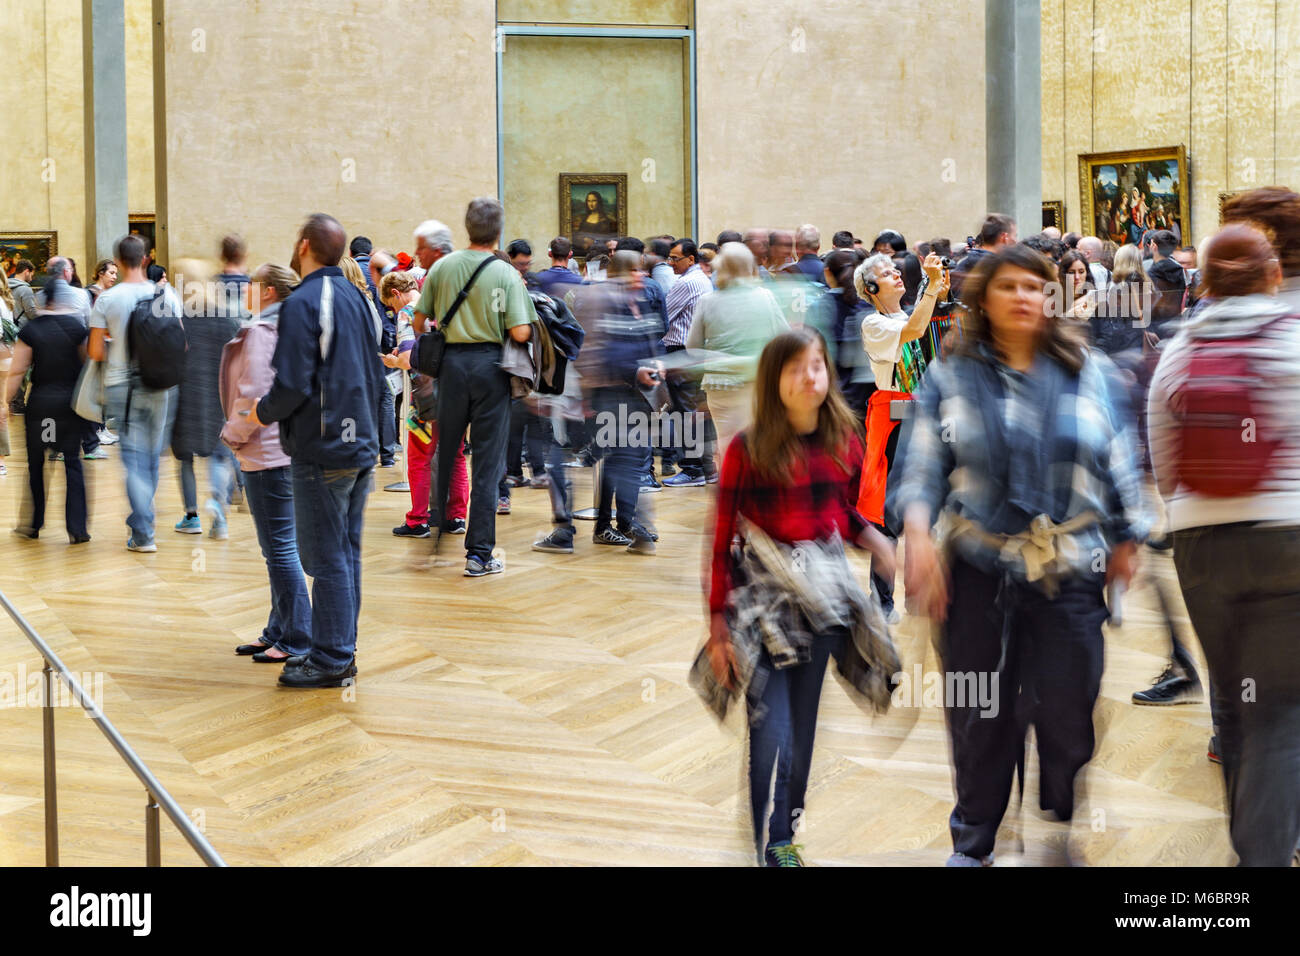 PARIS - MAY 16: Unidentified huge group of tourist taking photos to Mona Lisa at the Louvre Museum on May 16 2015 - Stock Image